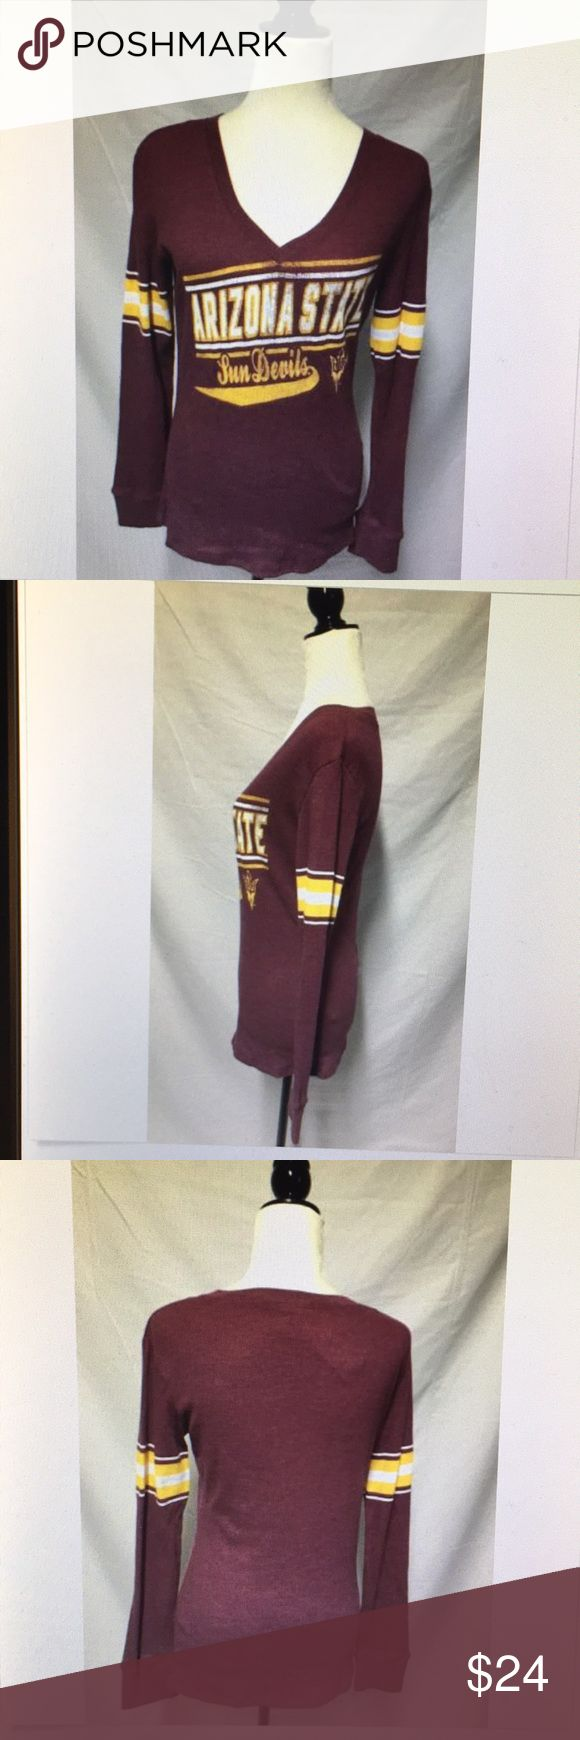 Arizona State Sun Devils small varsity thermal Arizona State Sun Devils woman size small varsity thermal V-neck longsleeve topKnights Apparel new with tags maroon and gold in color intentional distressing cotton polyester blend machine washable.  17 1/2 inch bust laying flat 16 inch waist 26 inches in length Knights Apparel Tops